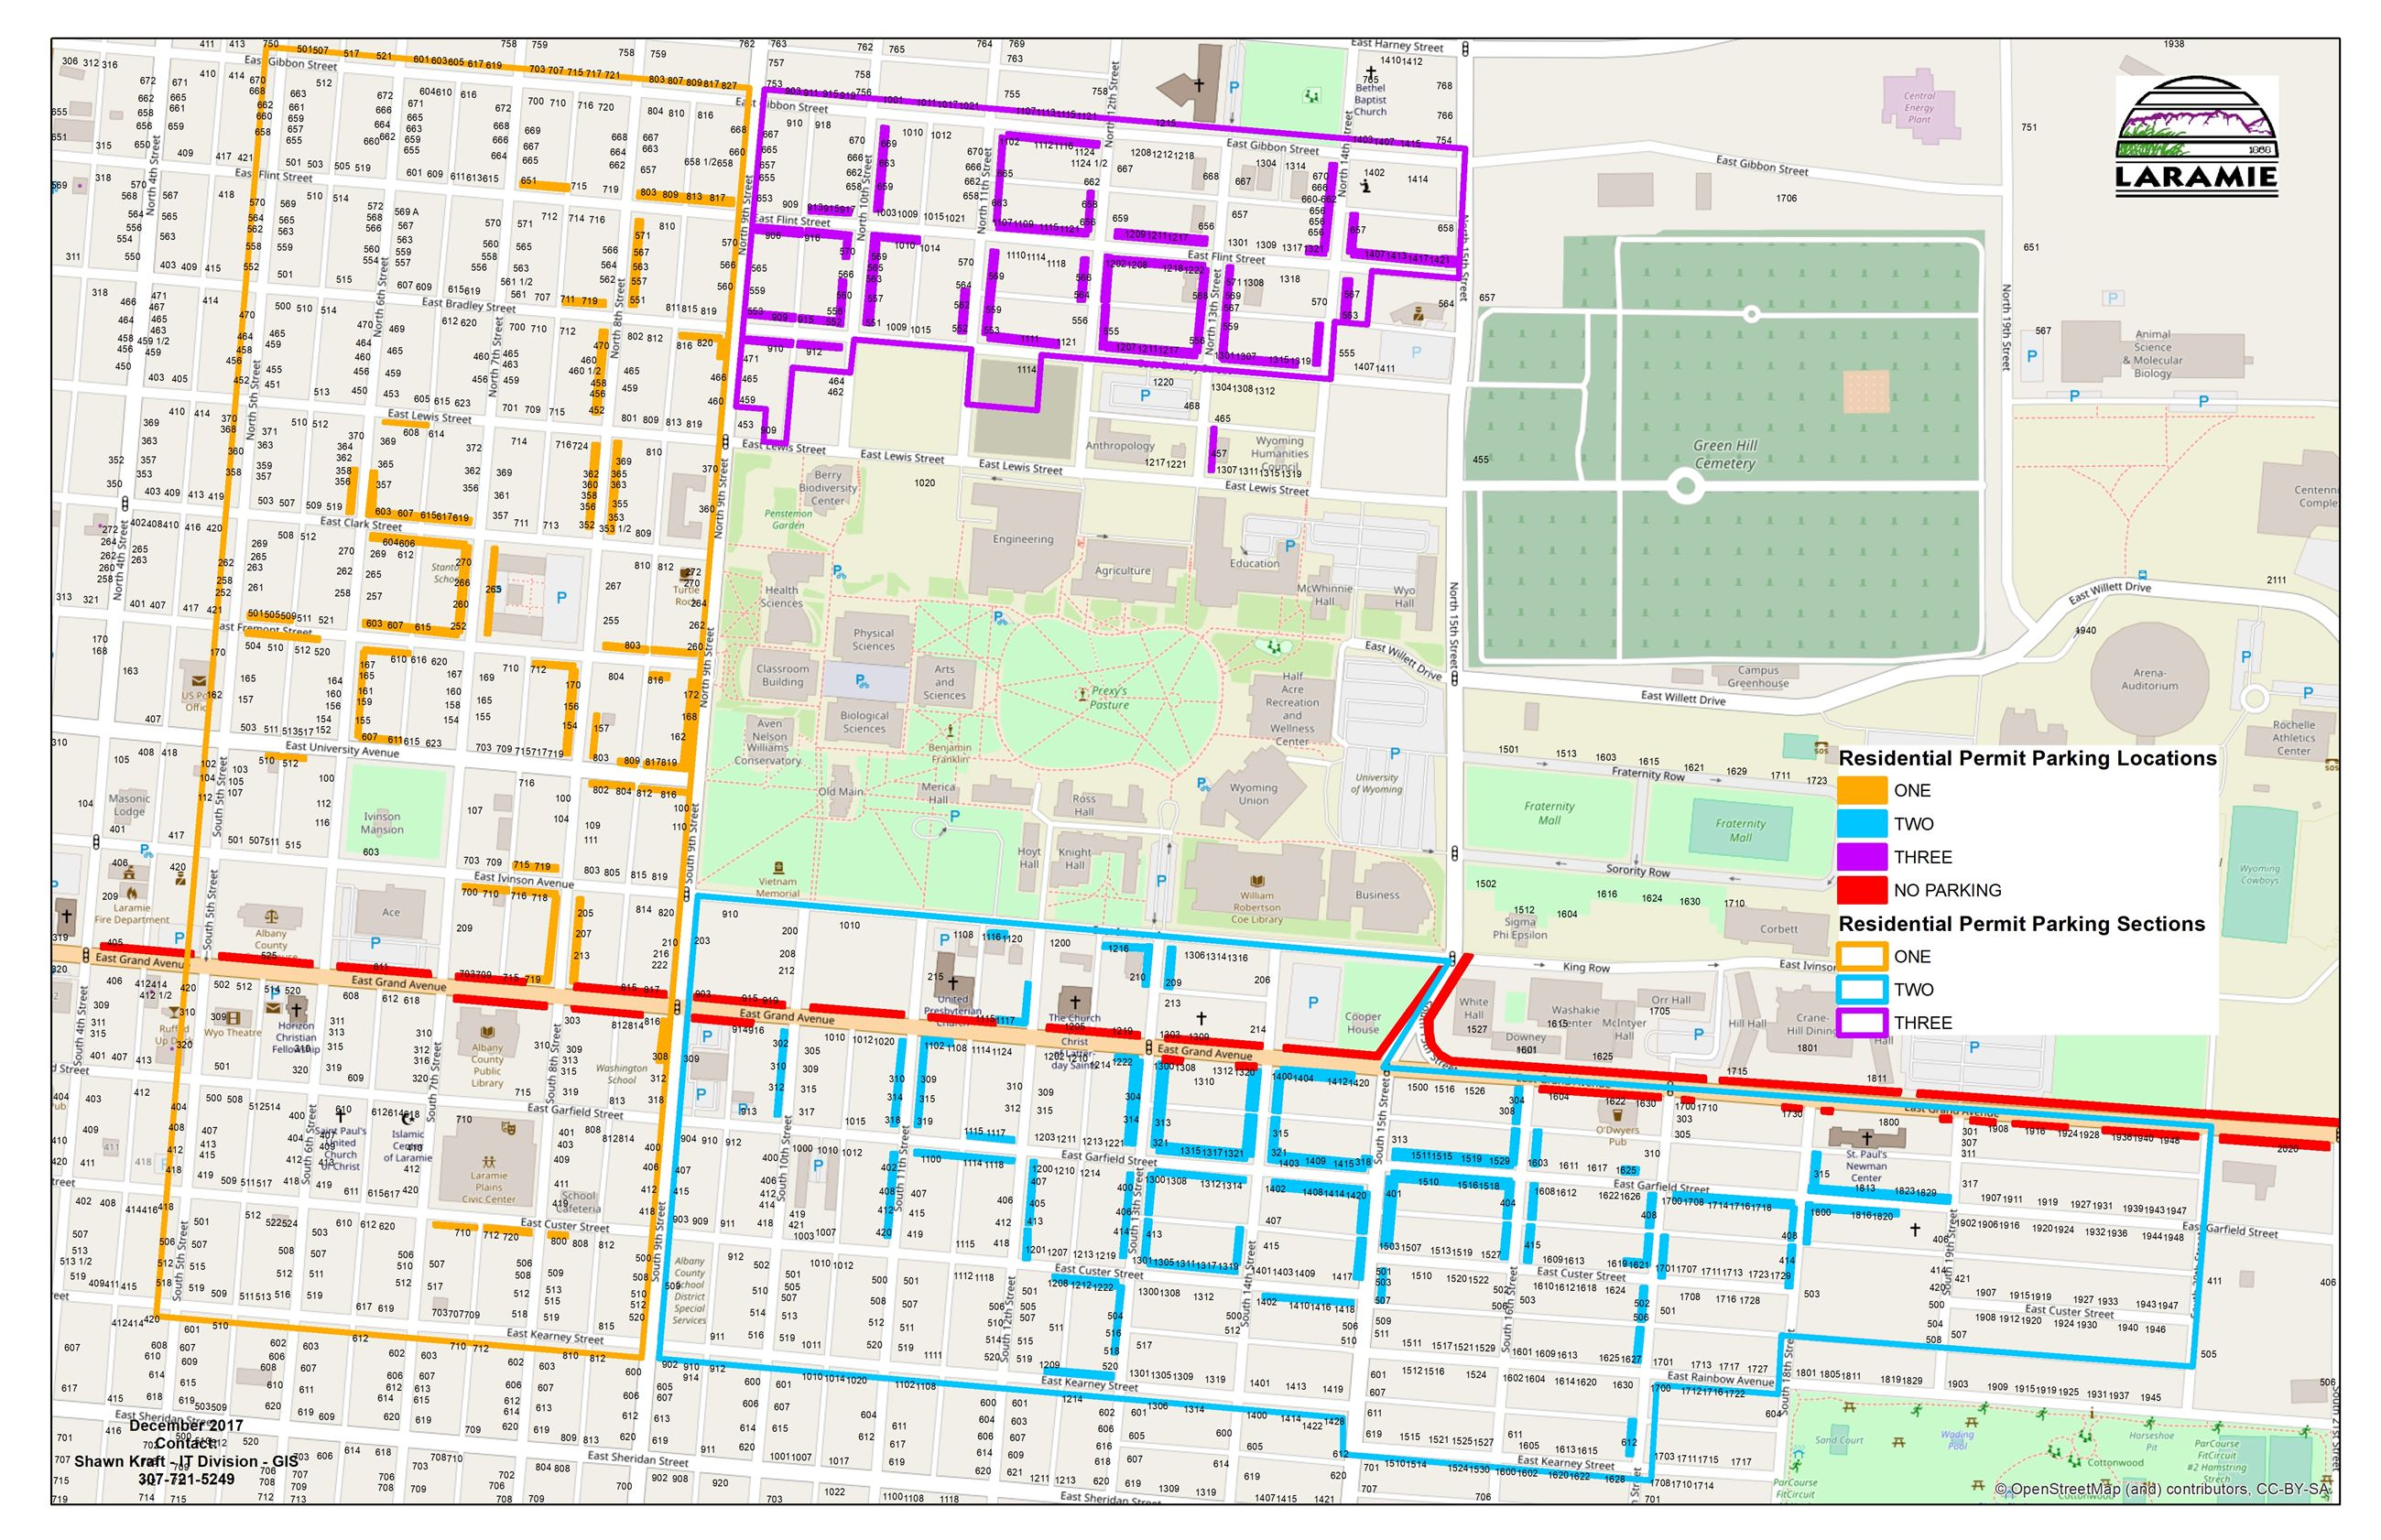 Permit Parking Residential Map